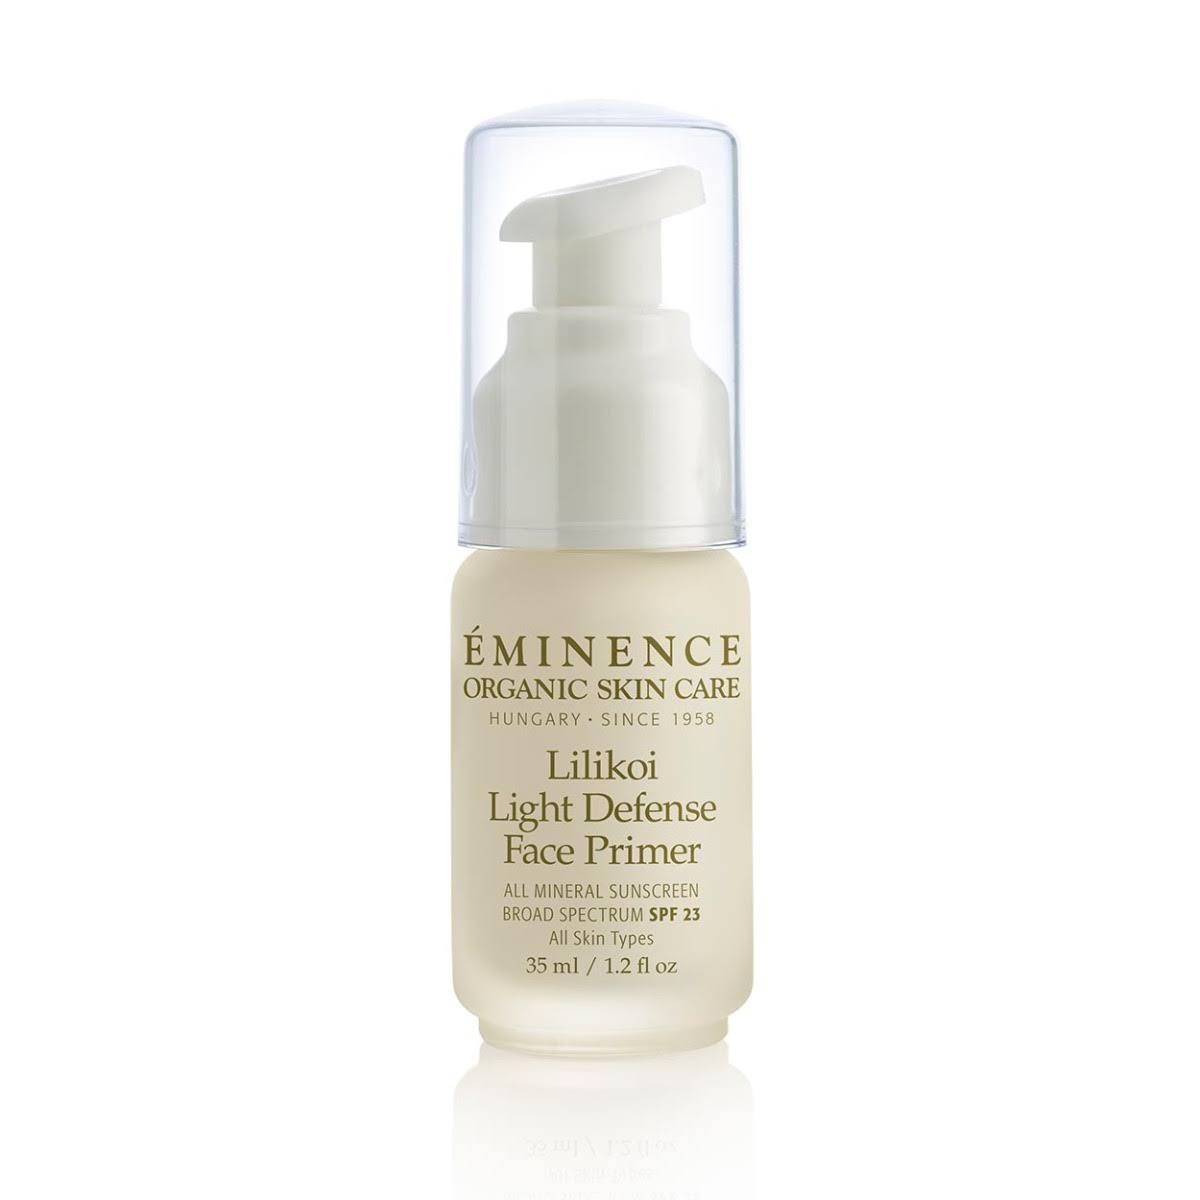 Eminence - Lilikoi Light Defense Face Primer SPF 23